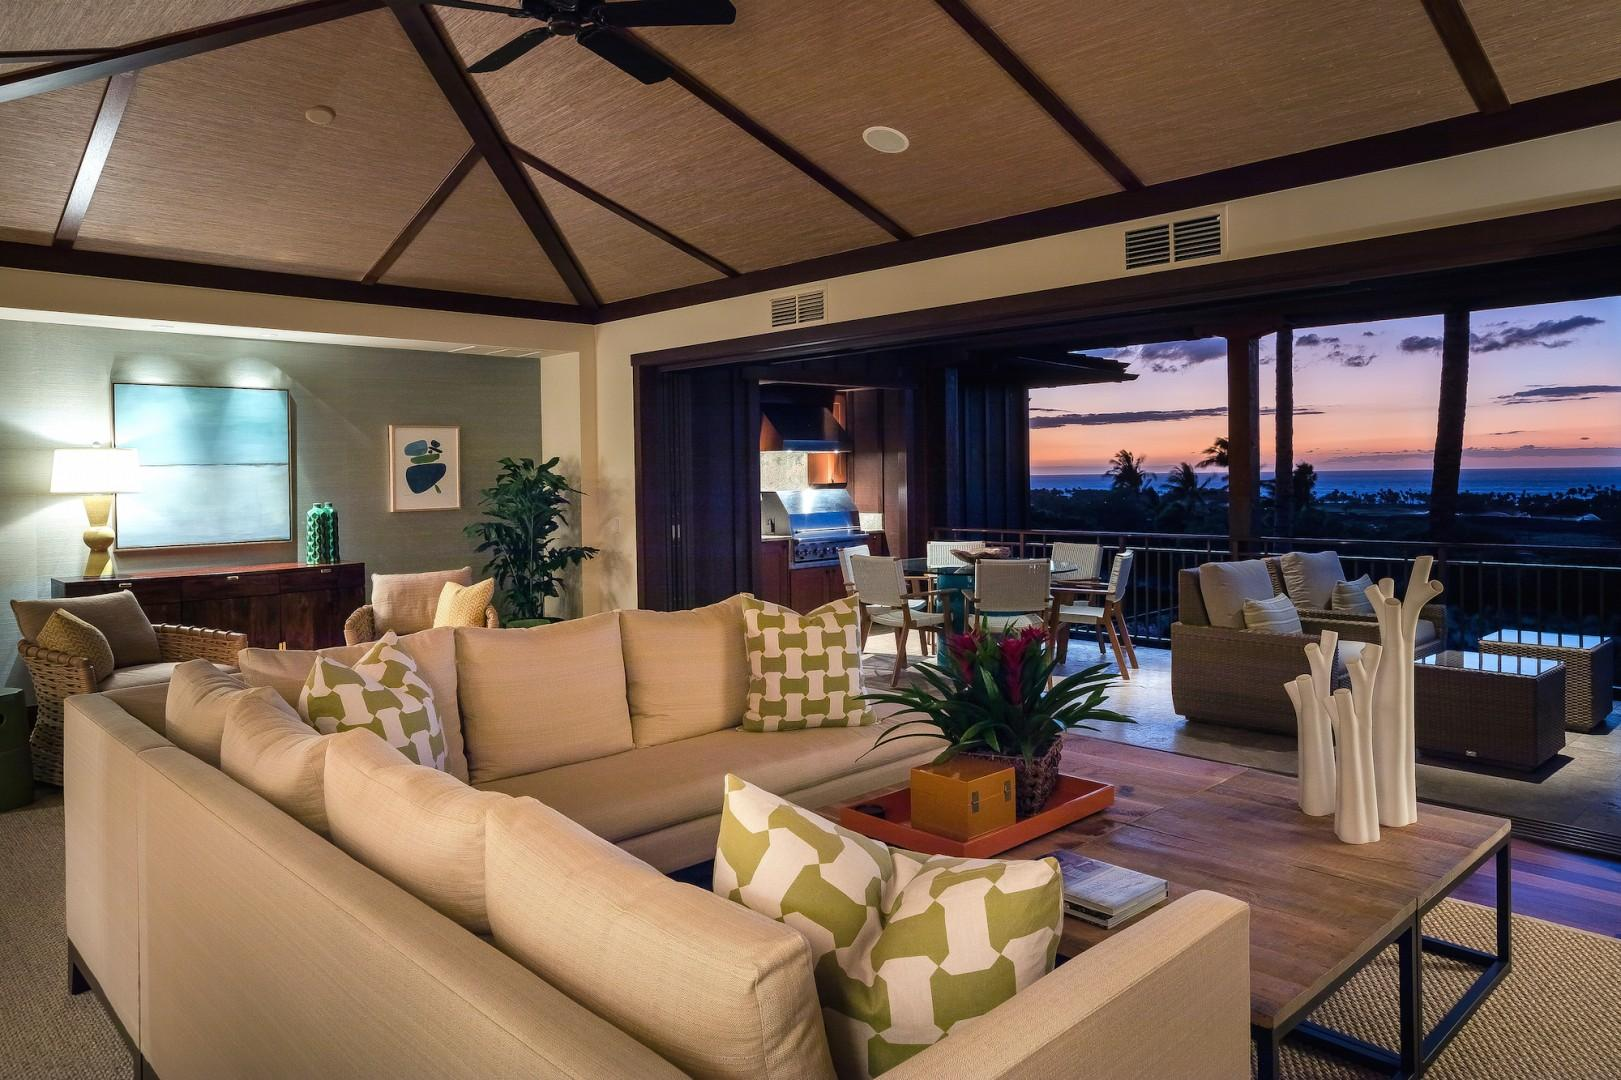 Enjoy colorful tropical sunsets in comfort with seamless transition between indoor and outdoor living spaces.